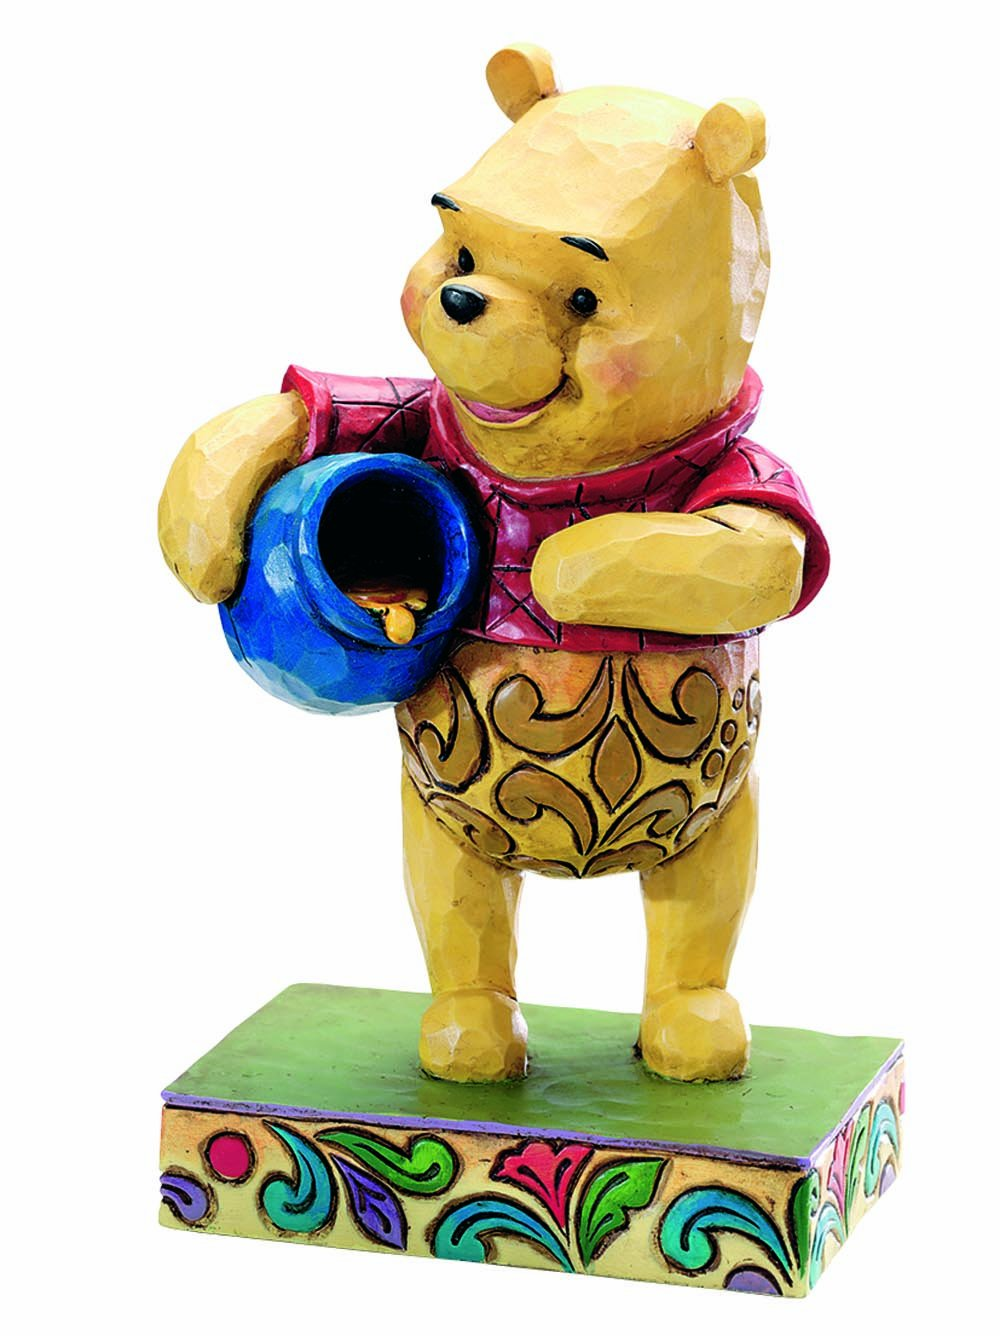 Enesco Disney Traditions by Jim Shore 4008081 Winnie The Pooh with Honey Pot Personality Pose Figurine 4-1/2-Inch